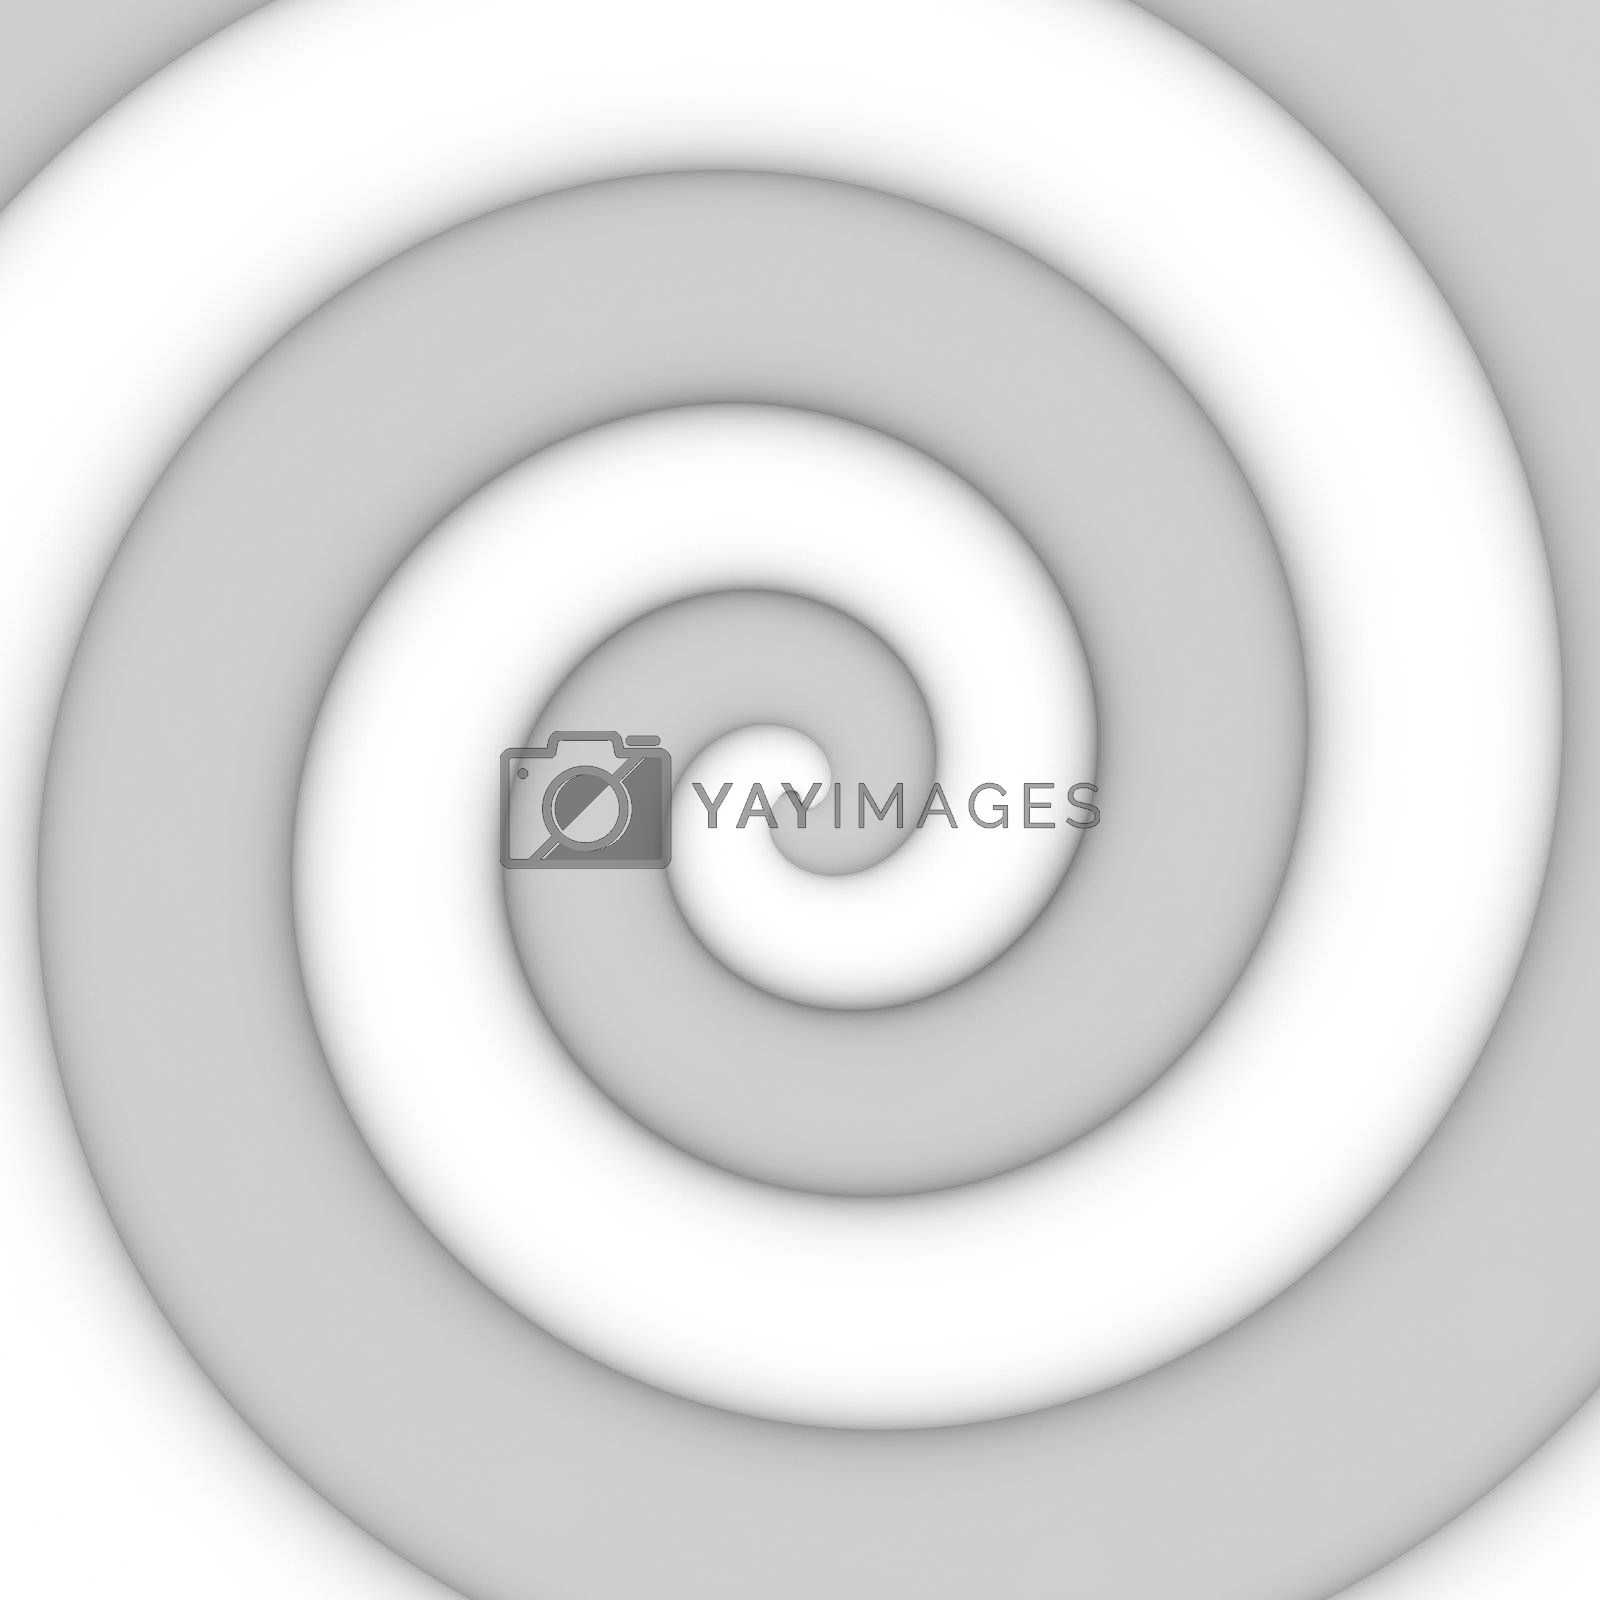 Abstract background of gray spiral swirl